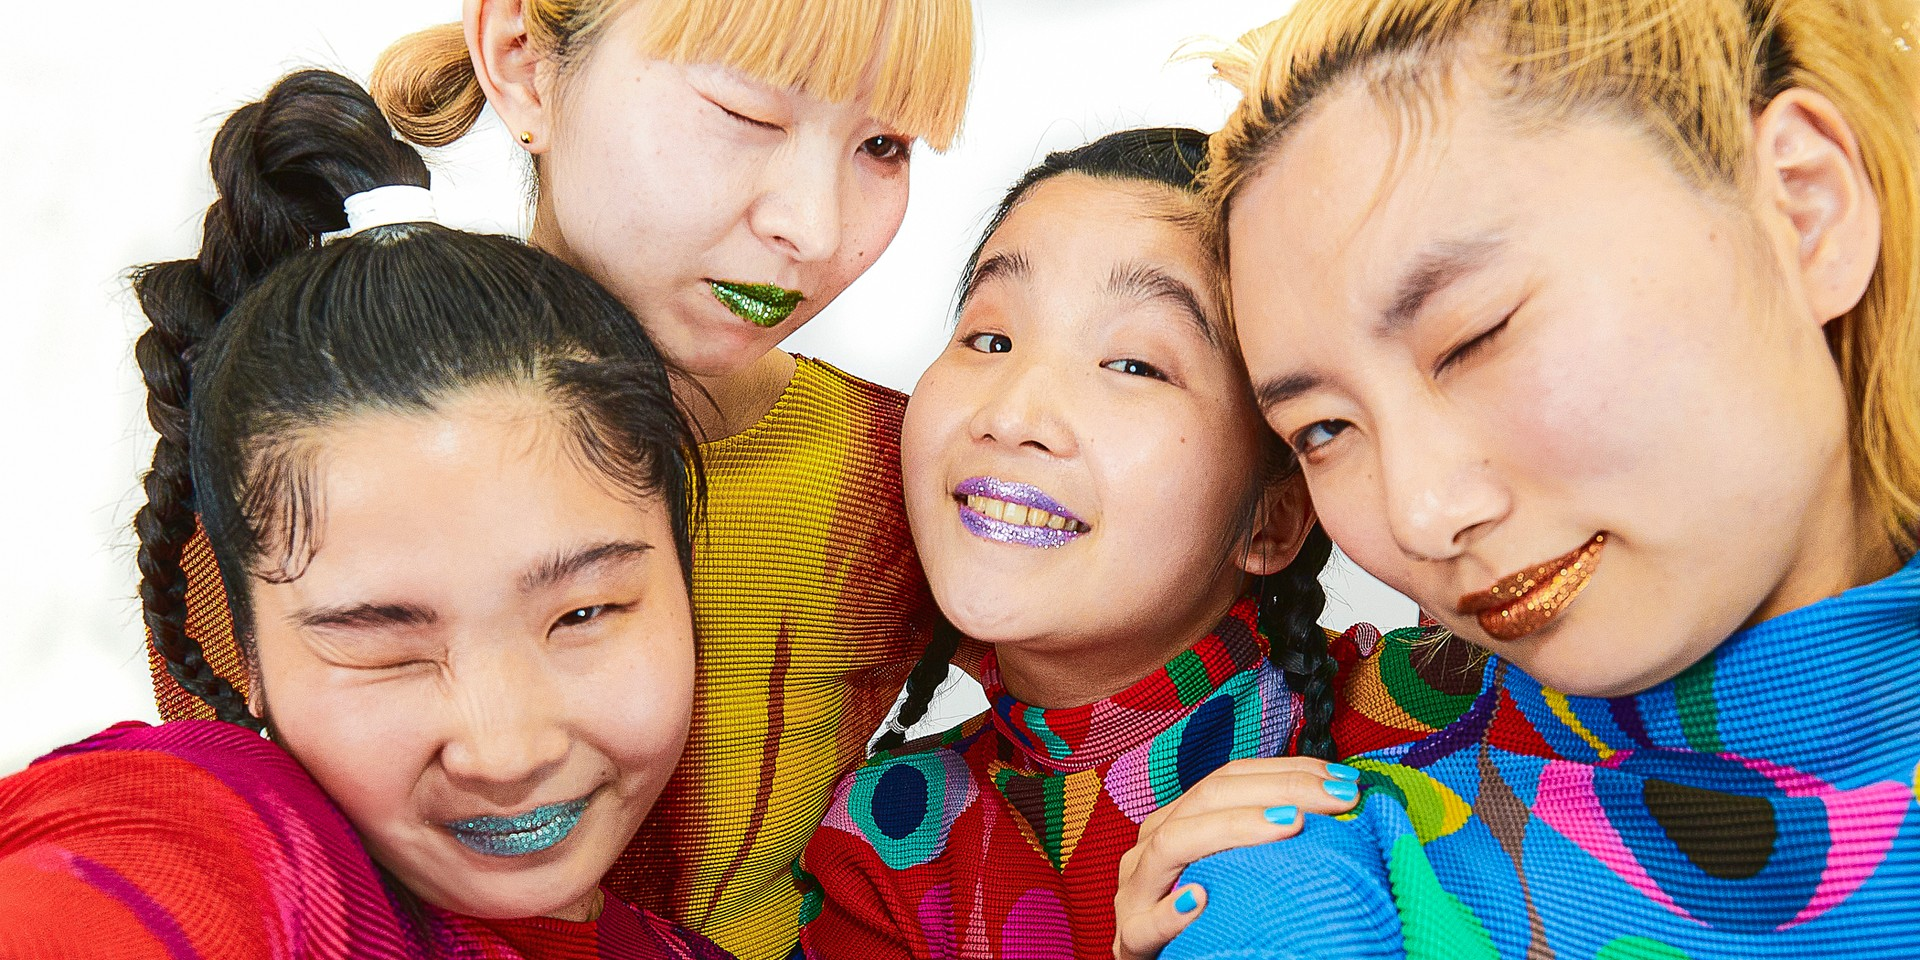 CHAI on creating their new album 'WINK', embracing self-love, and their aspirations of becoming global icons